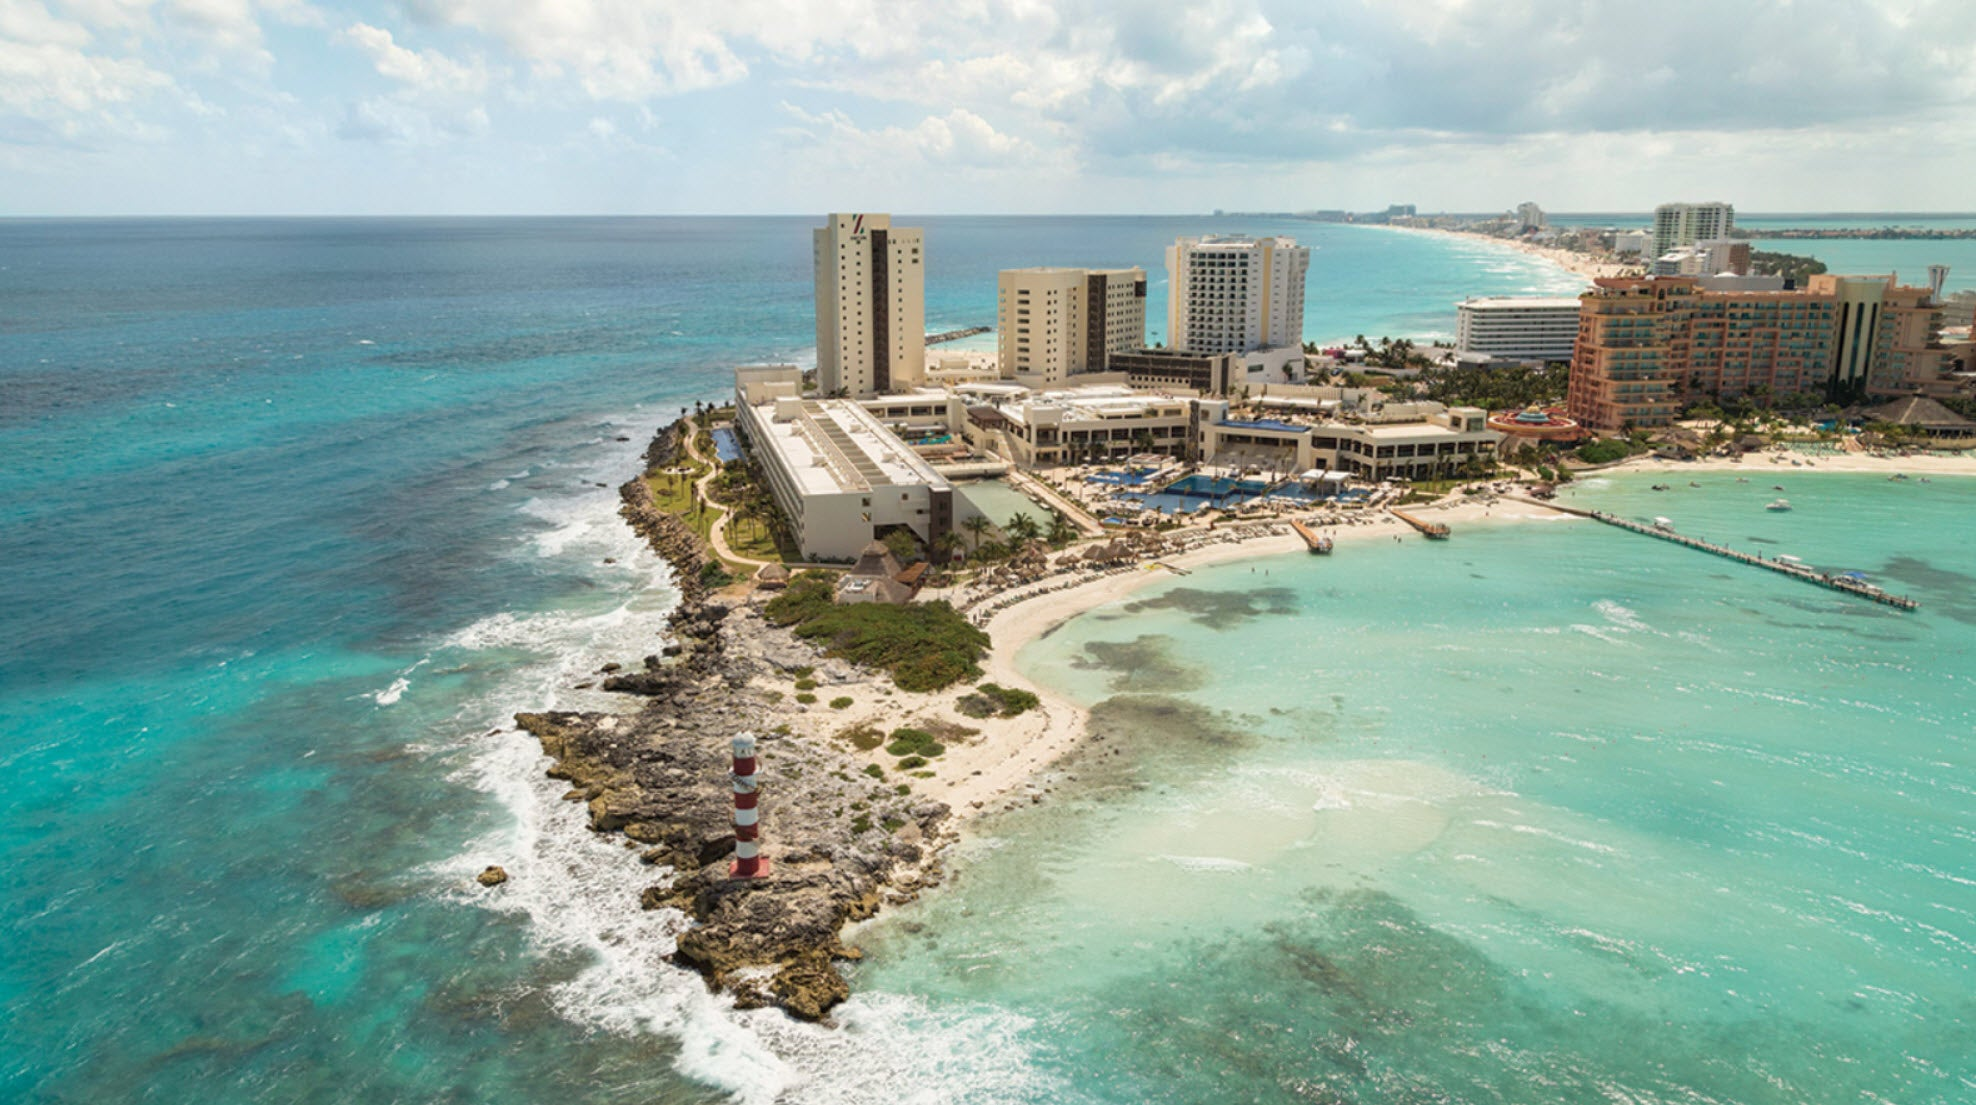 Tragedy in Cancun – Should Travel Advisories Dictate Our Travel?